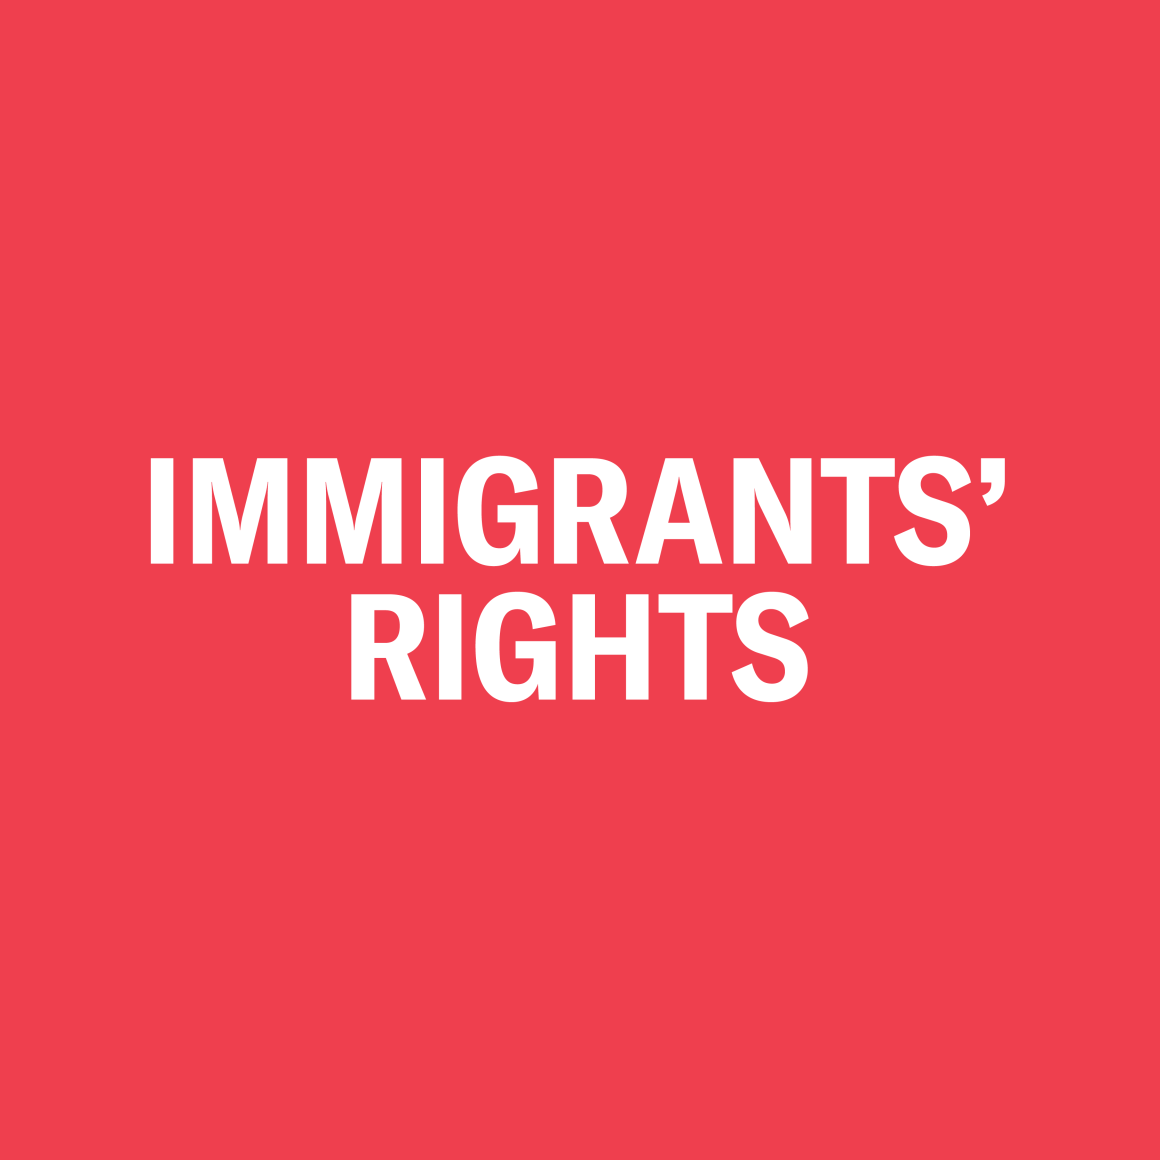 Immigrants' Rights